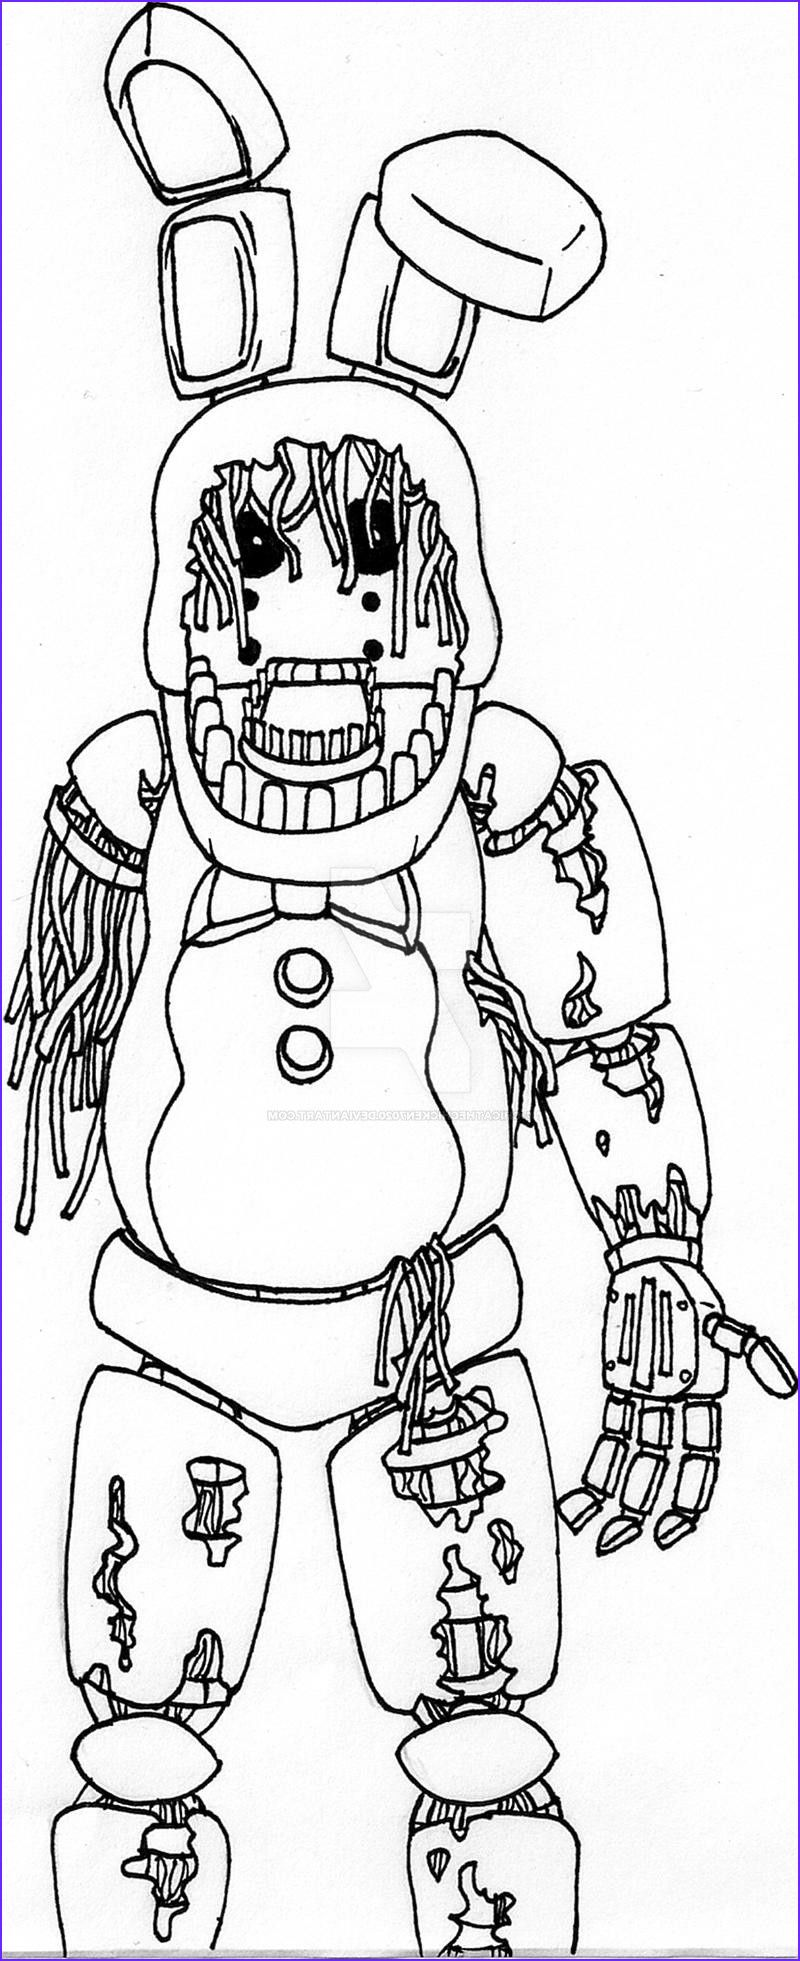 Funtime Freddy Coloring Page Elegant 7 Foxy Lineart Withered For Free On Ayoqq Cliparts In 2020 Fnaf Coloring Pages Minion Coloring Pages Mandala Coloring Pages